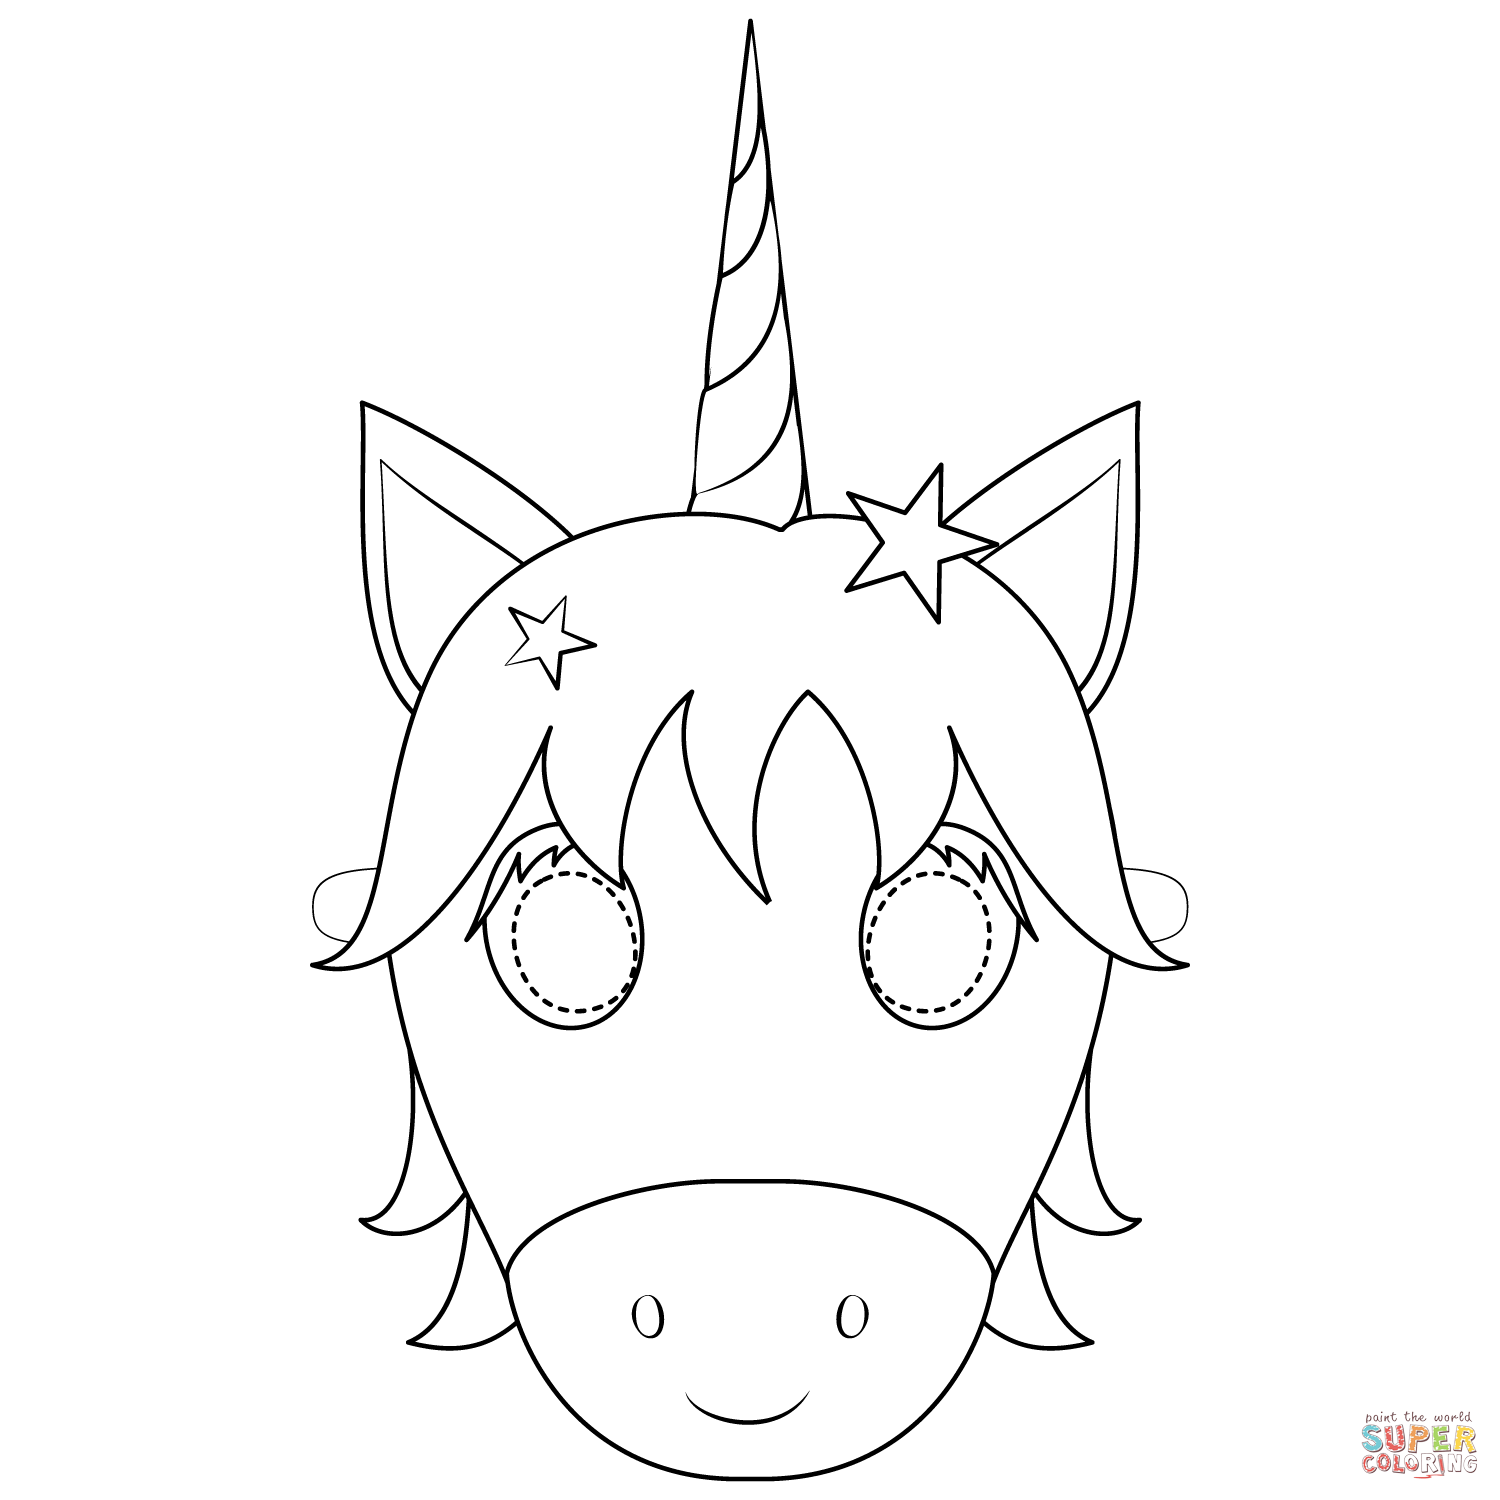 unicorn mask coloring page unicorn face masks with free printable templates simple page unicorn coloring mask